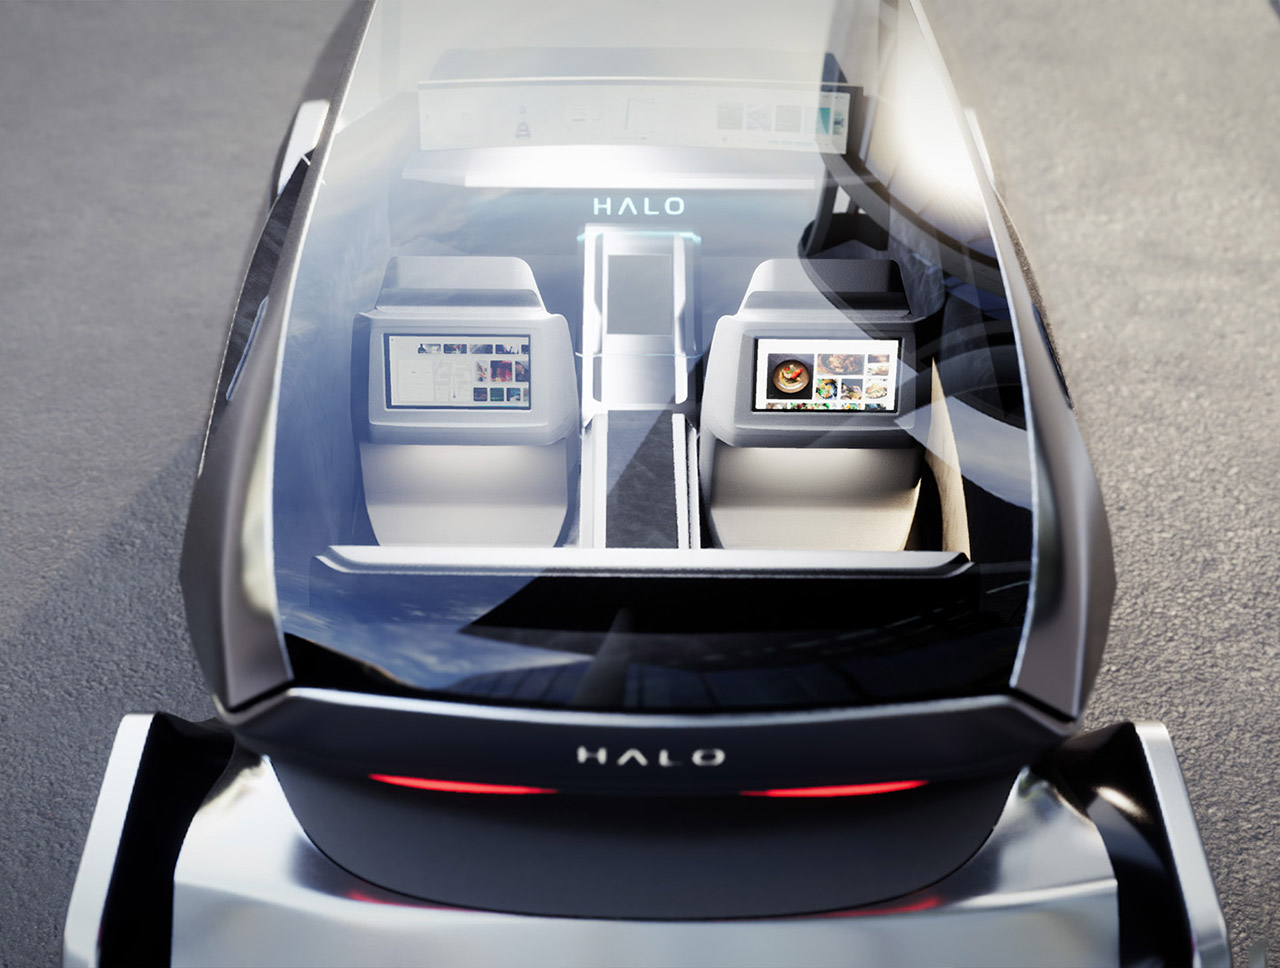 Luxoft Halo Robo Taxi LG CES